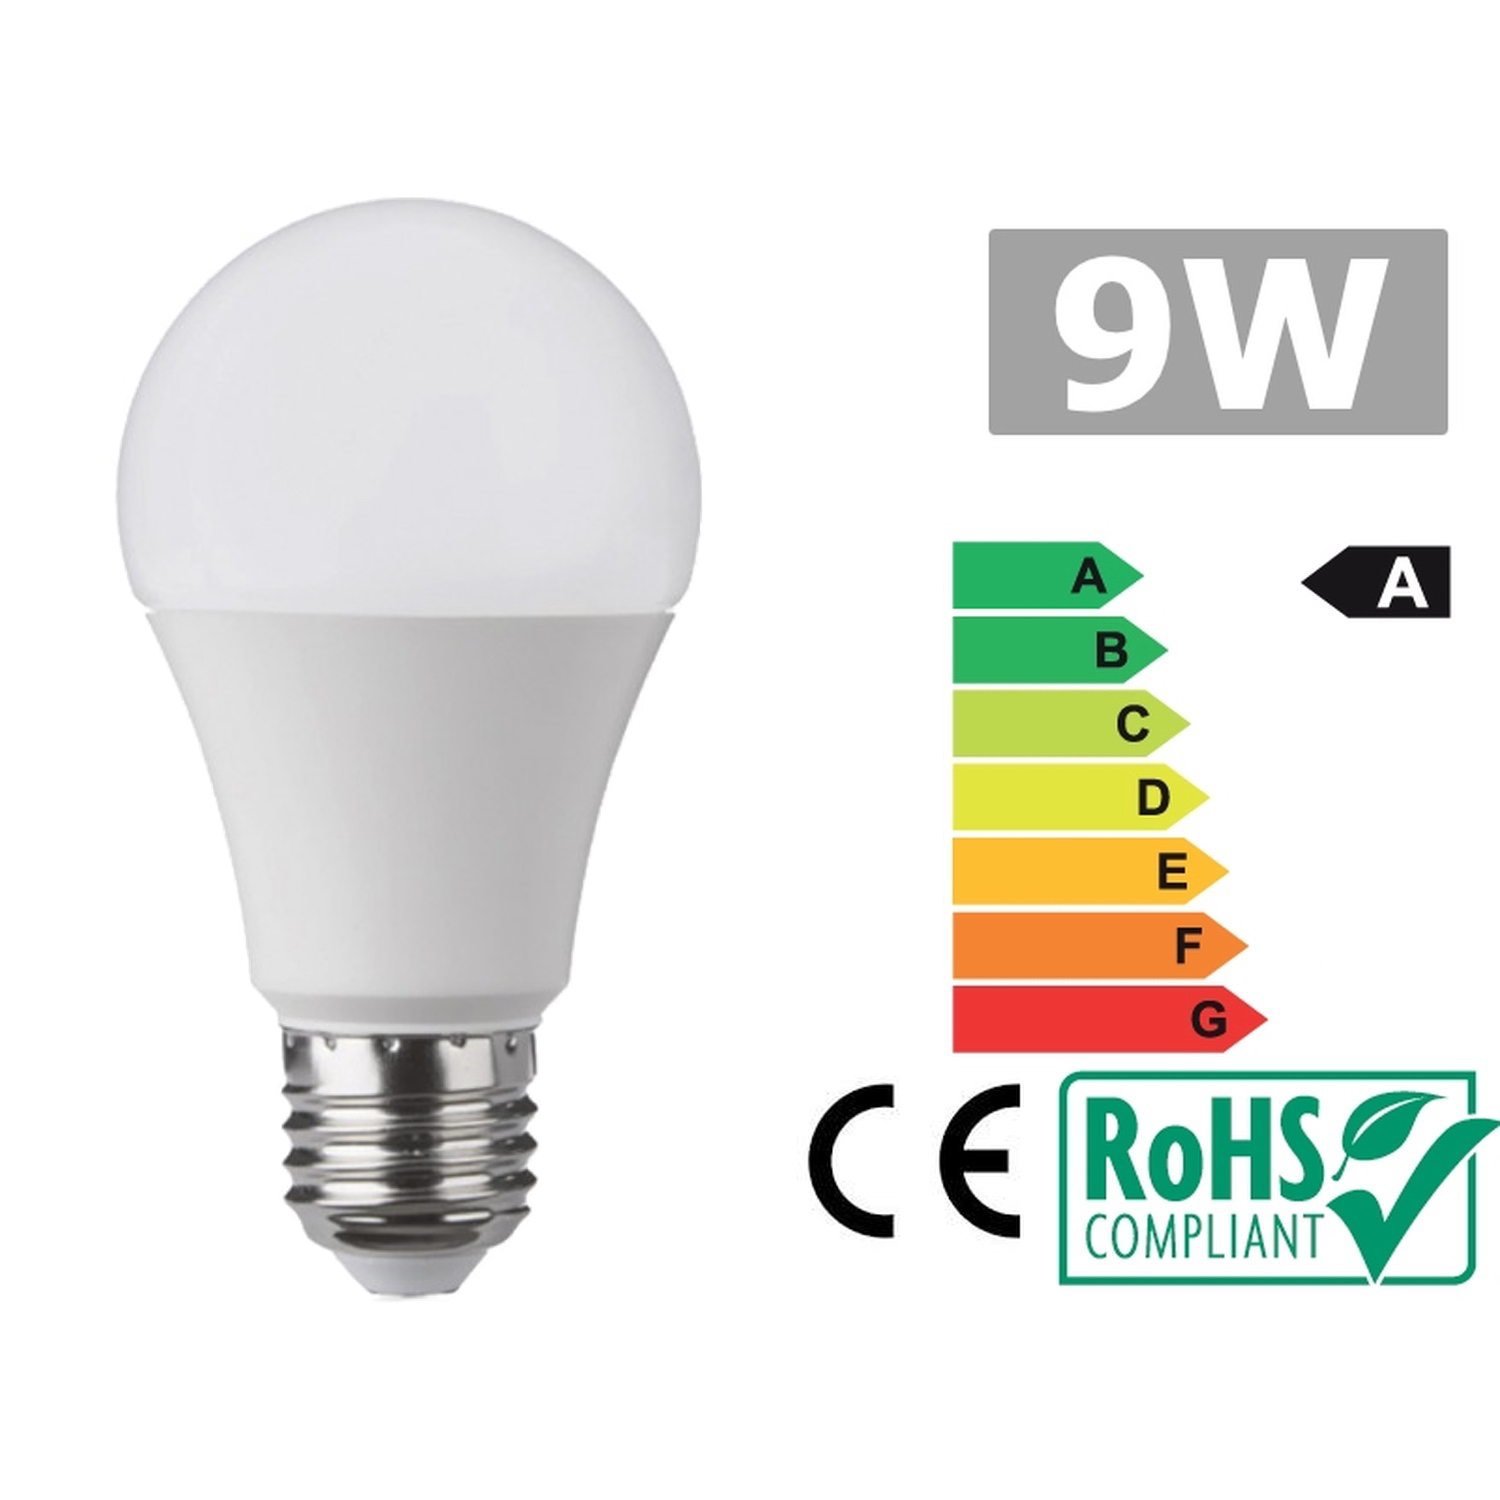 Led bulb E27 9W 3300K warm white